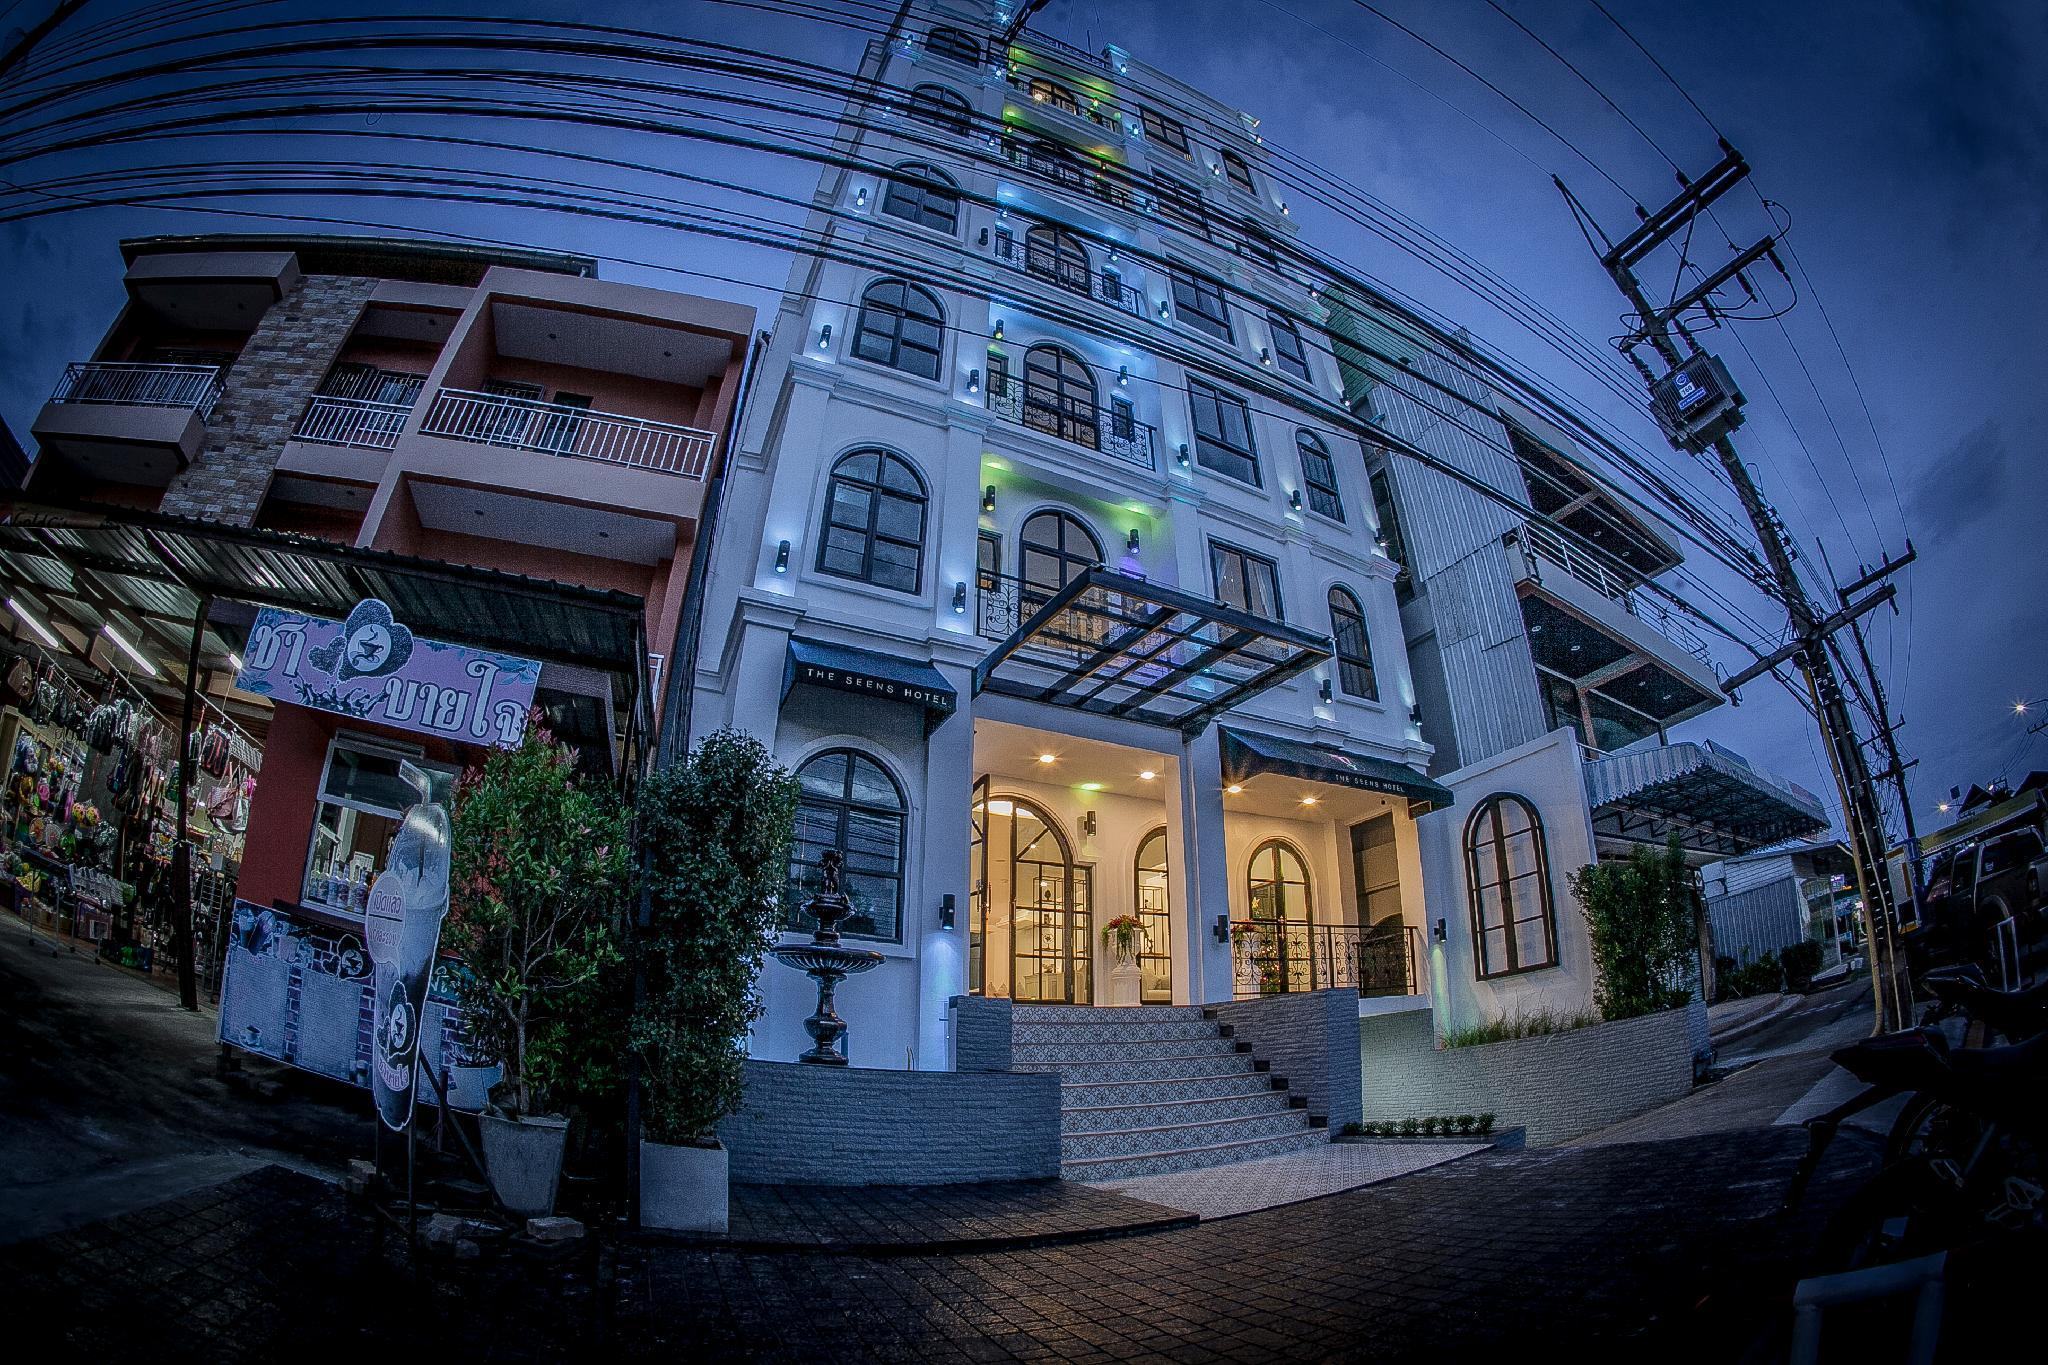 THE SEENS HOTEL